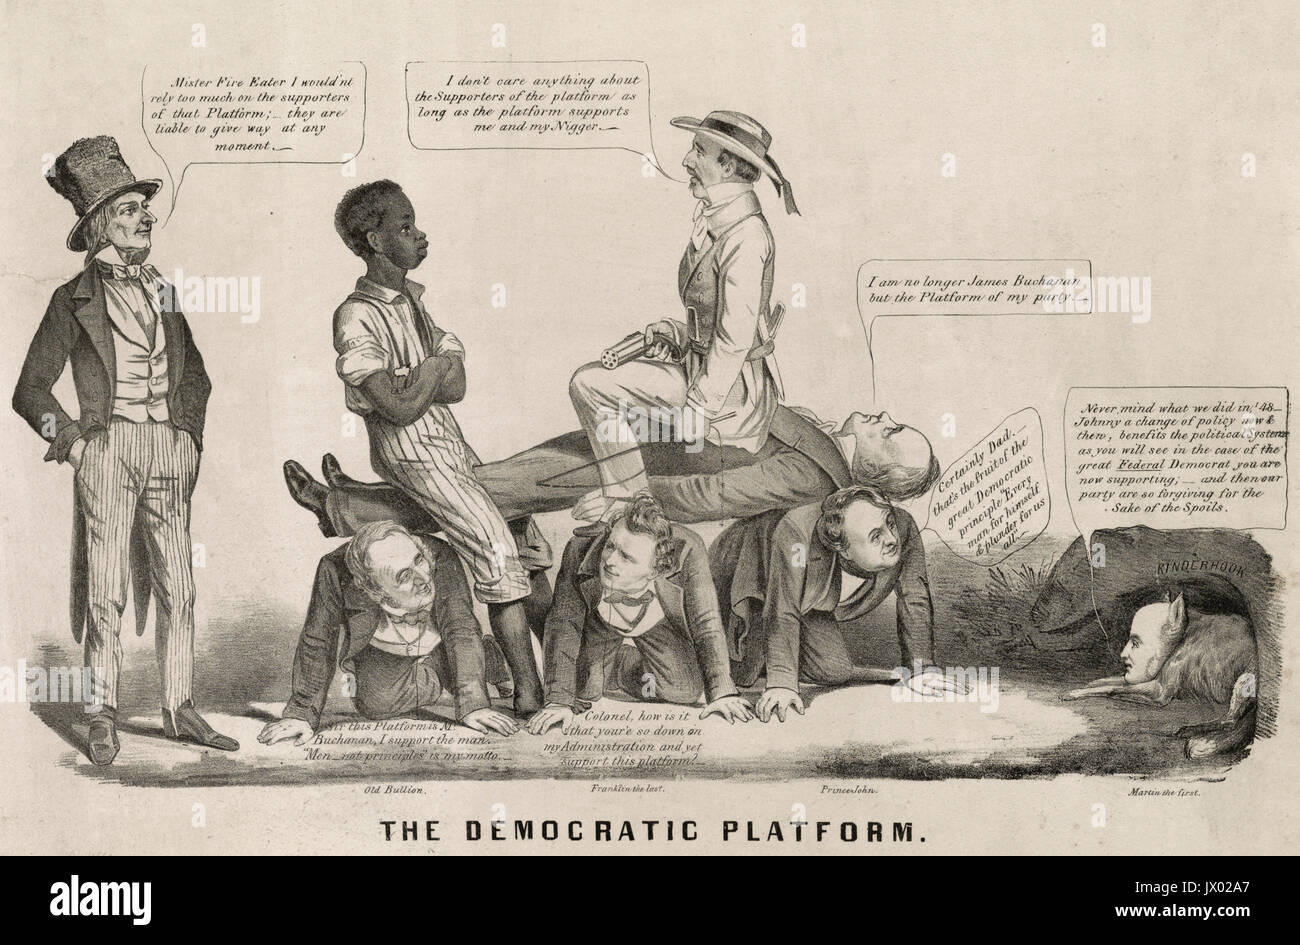 The Democratic Platform - Print shows Democratic presidential candidate James Buchanan lying on the backs of three men on their hands and knees, from left, Senator Thomas Hart Benton identified as 'Old Bullion', President Franklin Pierce identified as 'Franklin the last', and John Van Buren identified as 'Prince John', who is speaking to his father, former president, Martin Van Buren identified as 'Martin the first', shown as a fox in a cave on the right. Seated on top of Buchanan is a Southern slave owner with one of his young slaves. Brother Jonathan stands on the far left and suggests to th - Stock Image